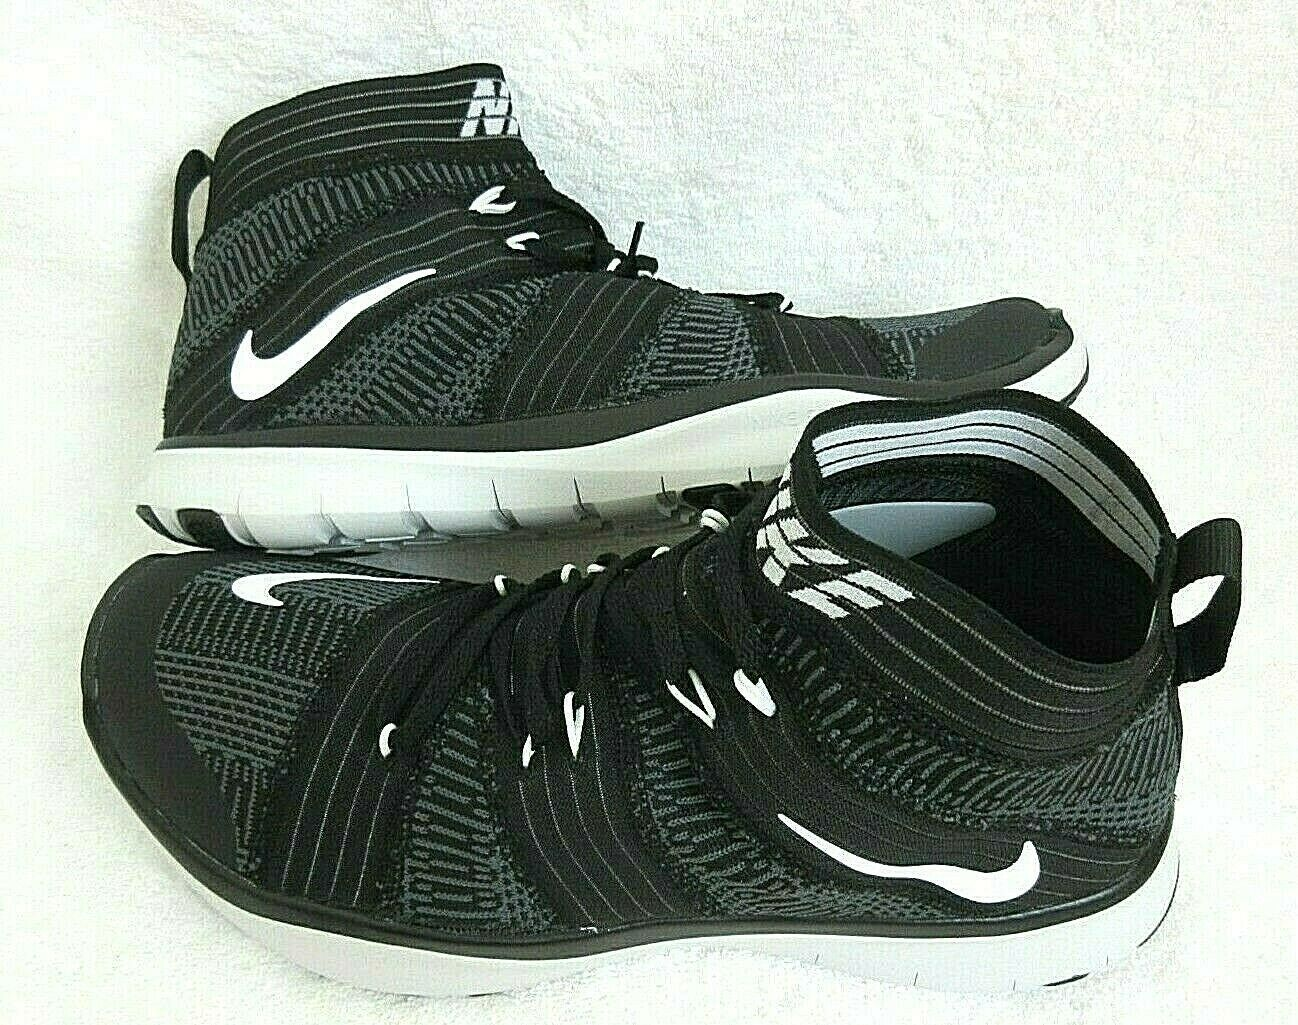 Primary image for Nike Mens Free Train Virtue Black White Grey Hi Top Training Shoes Size 12 New